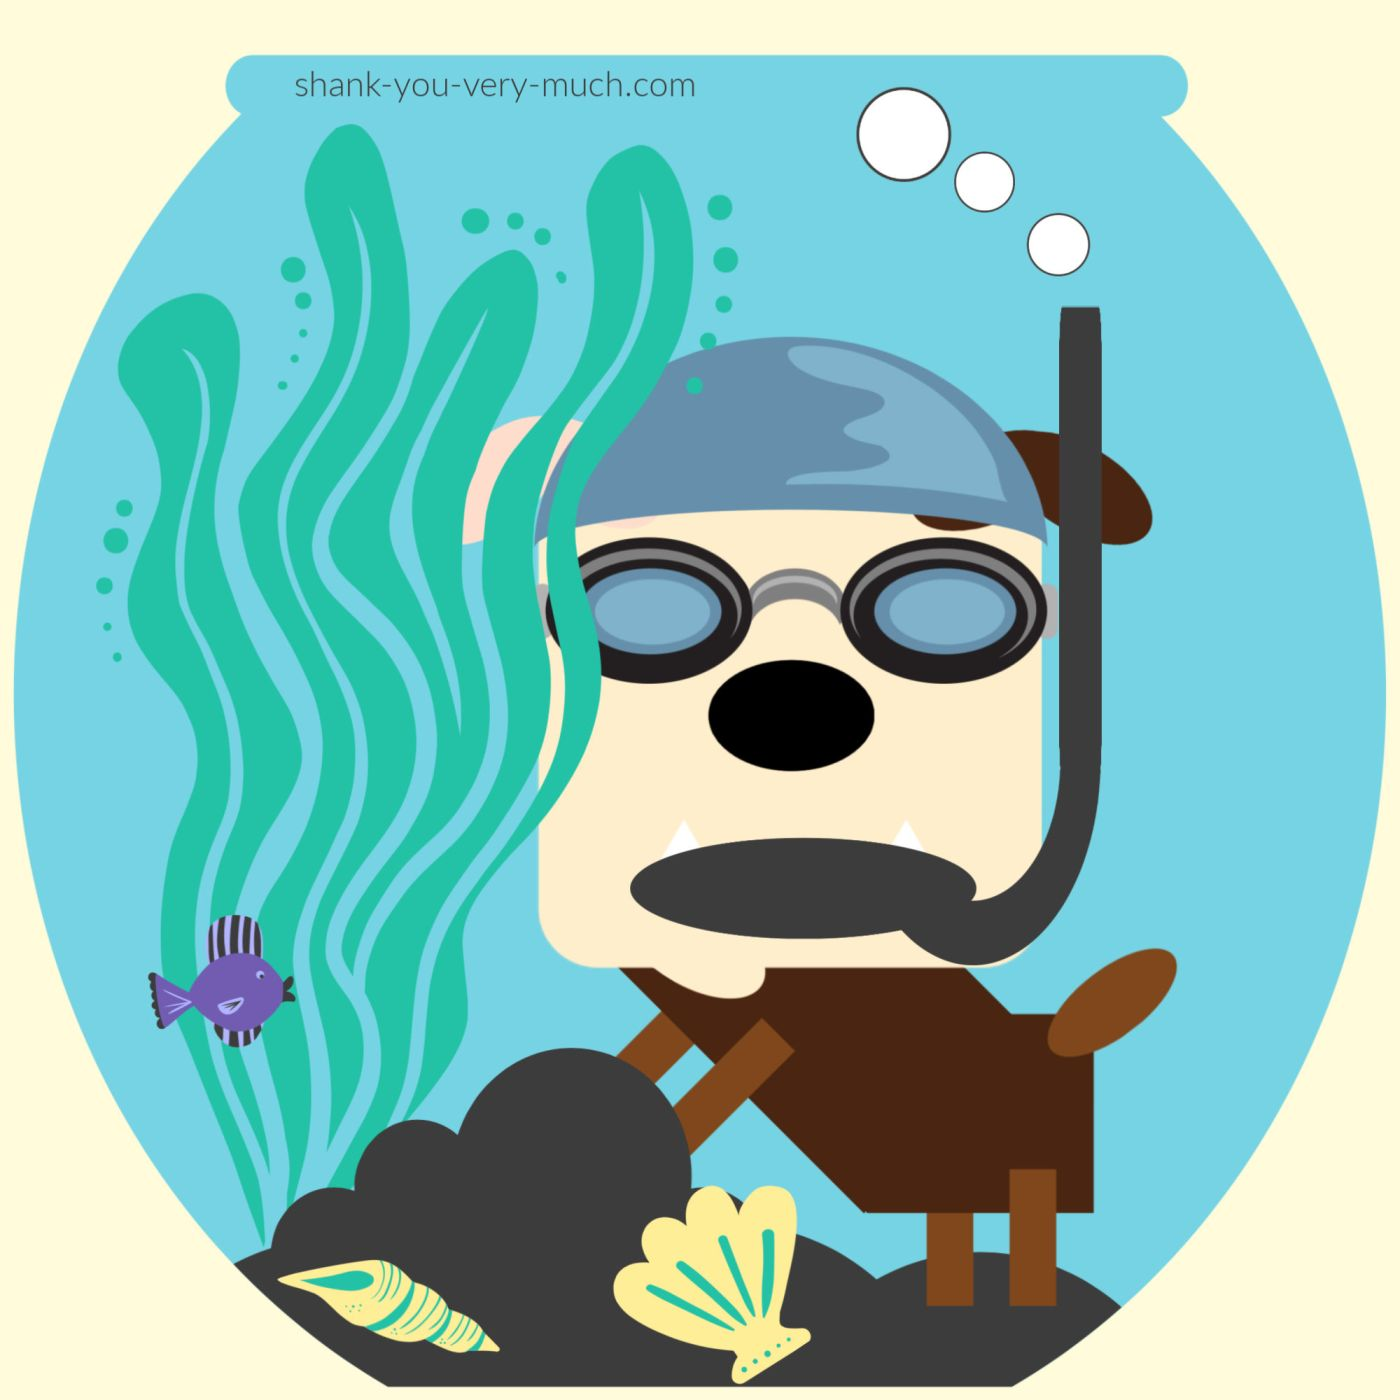 A cartoon rendering of Lola the English bulldog in a fishbowl. She's wearing a swimming cap, goggles, and a snorkel while hiding behind some seaweed. A fish stares at her.